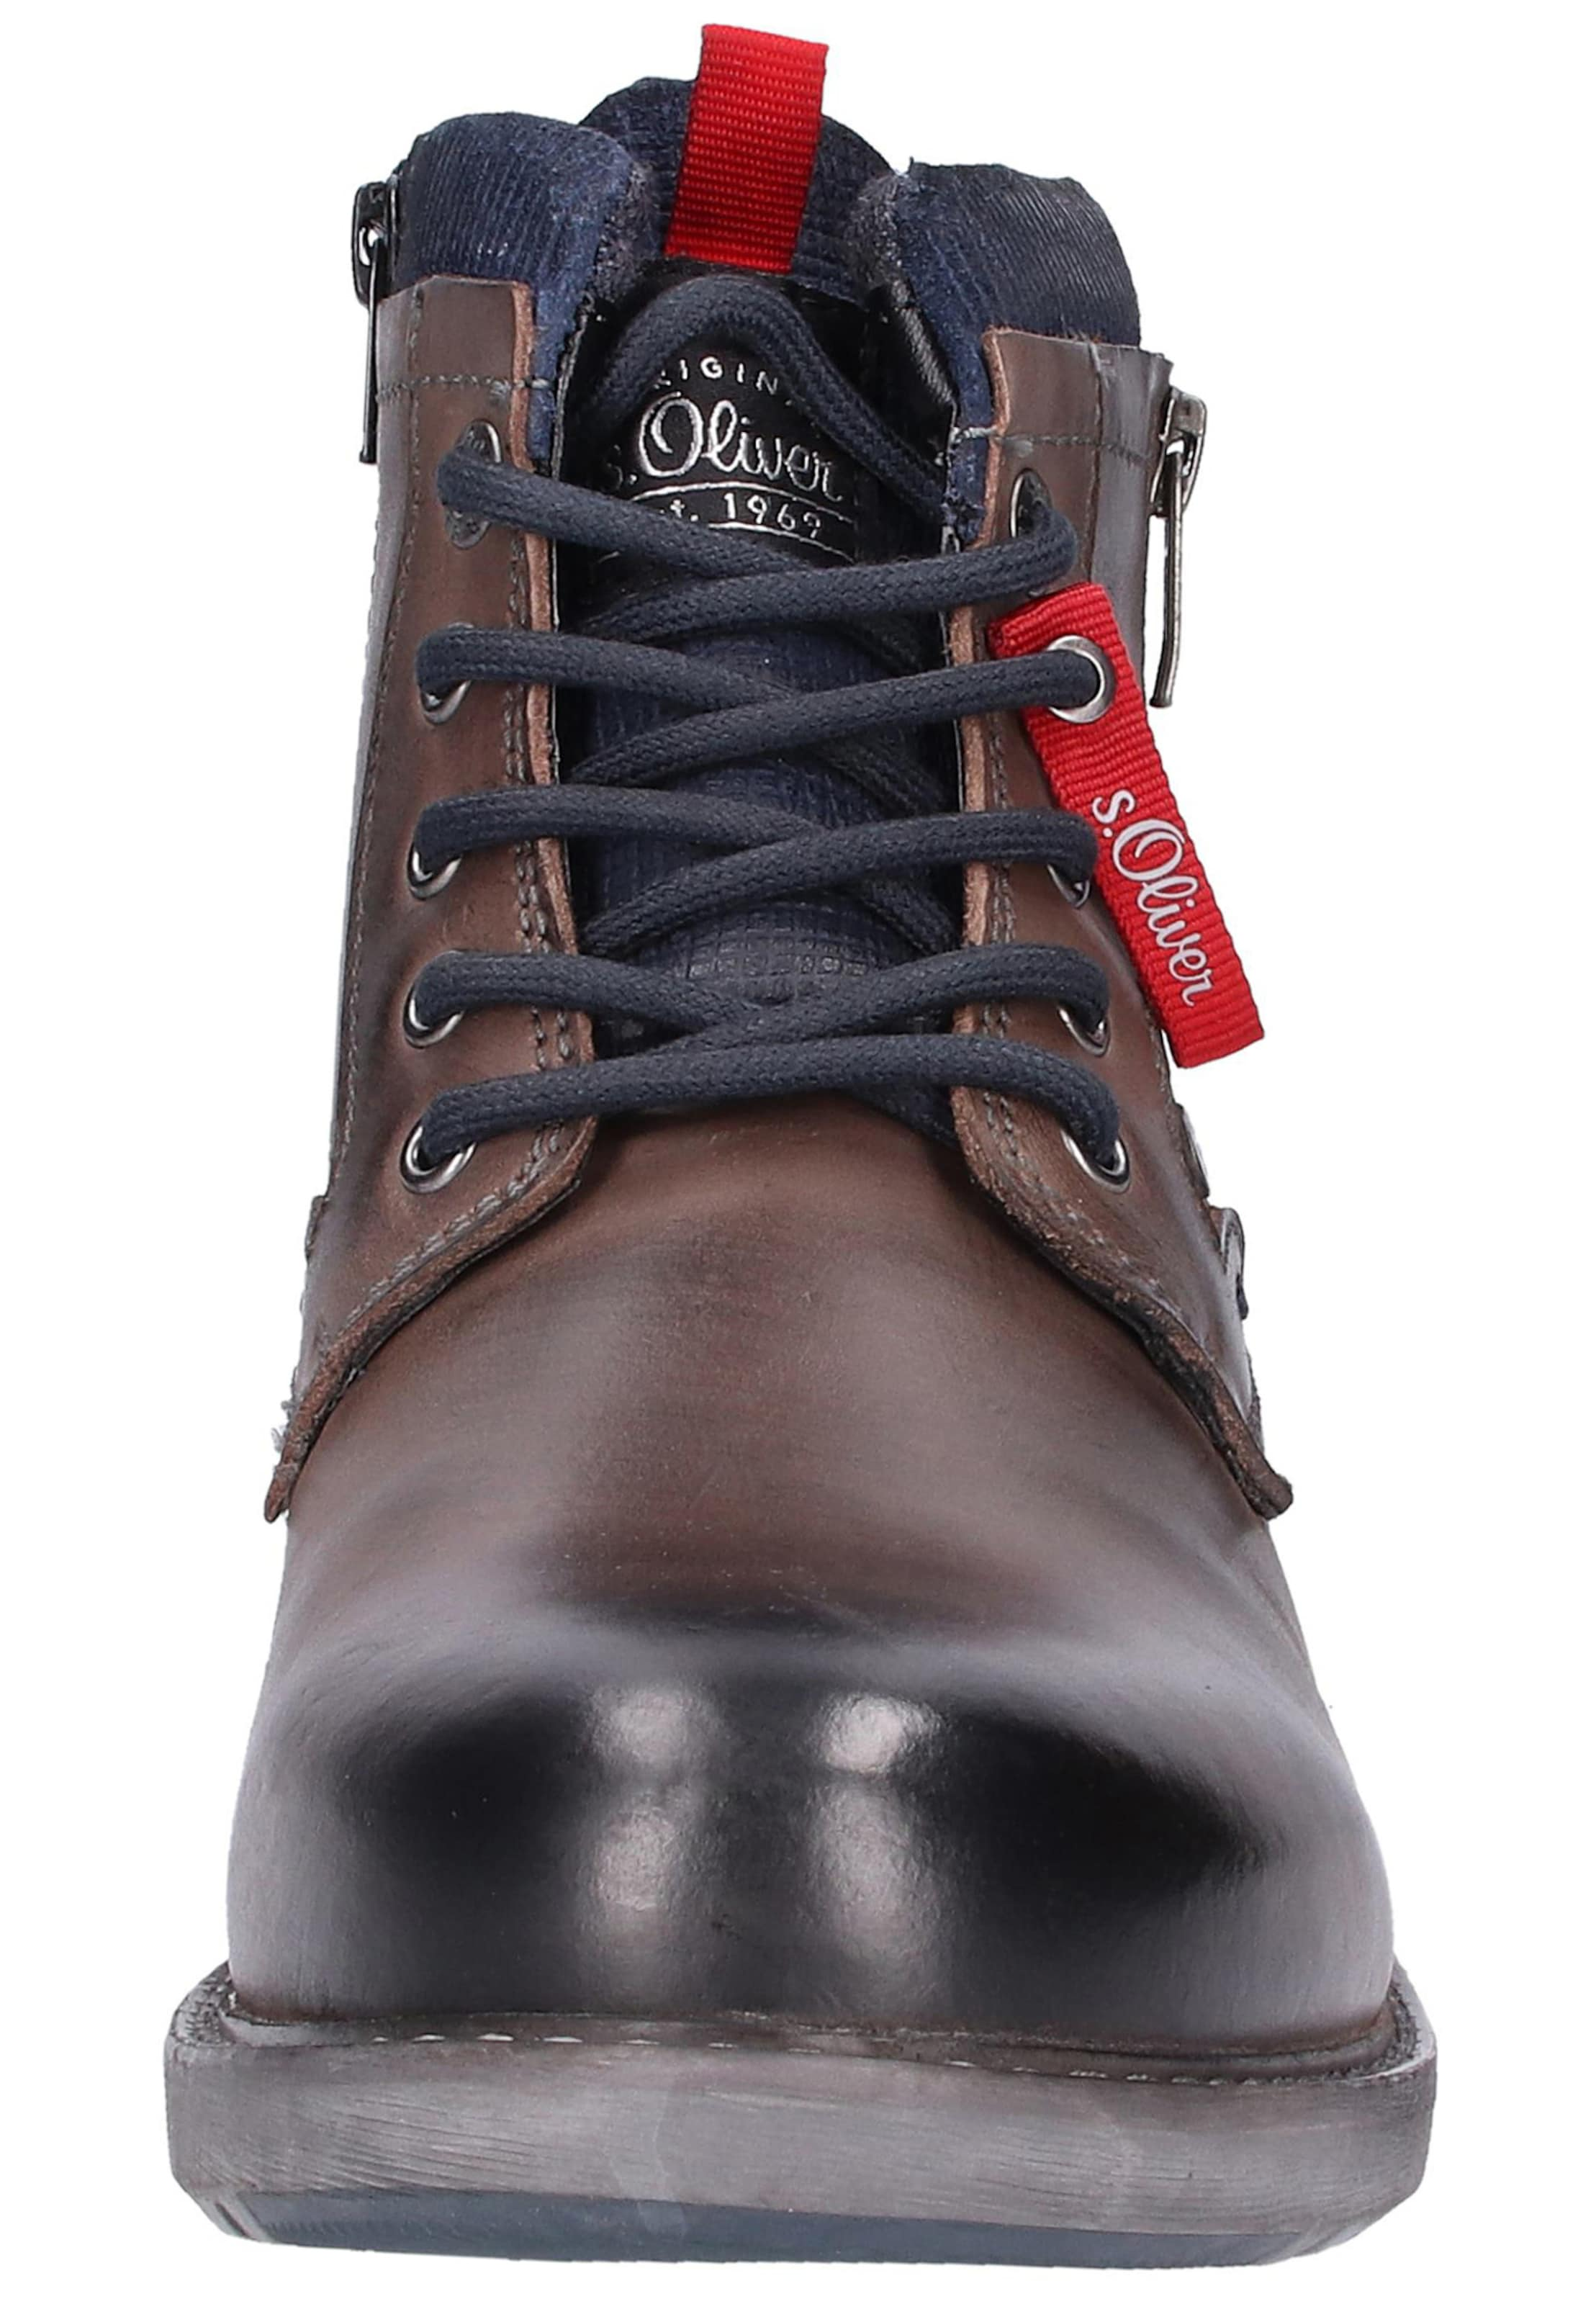 S Red Label À En Bottes Marron oliver Lacets PZwOlkXiuT